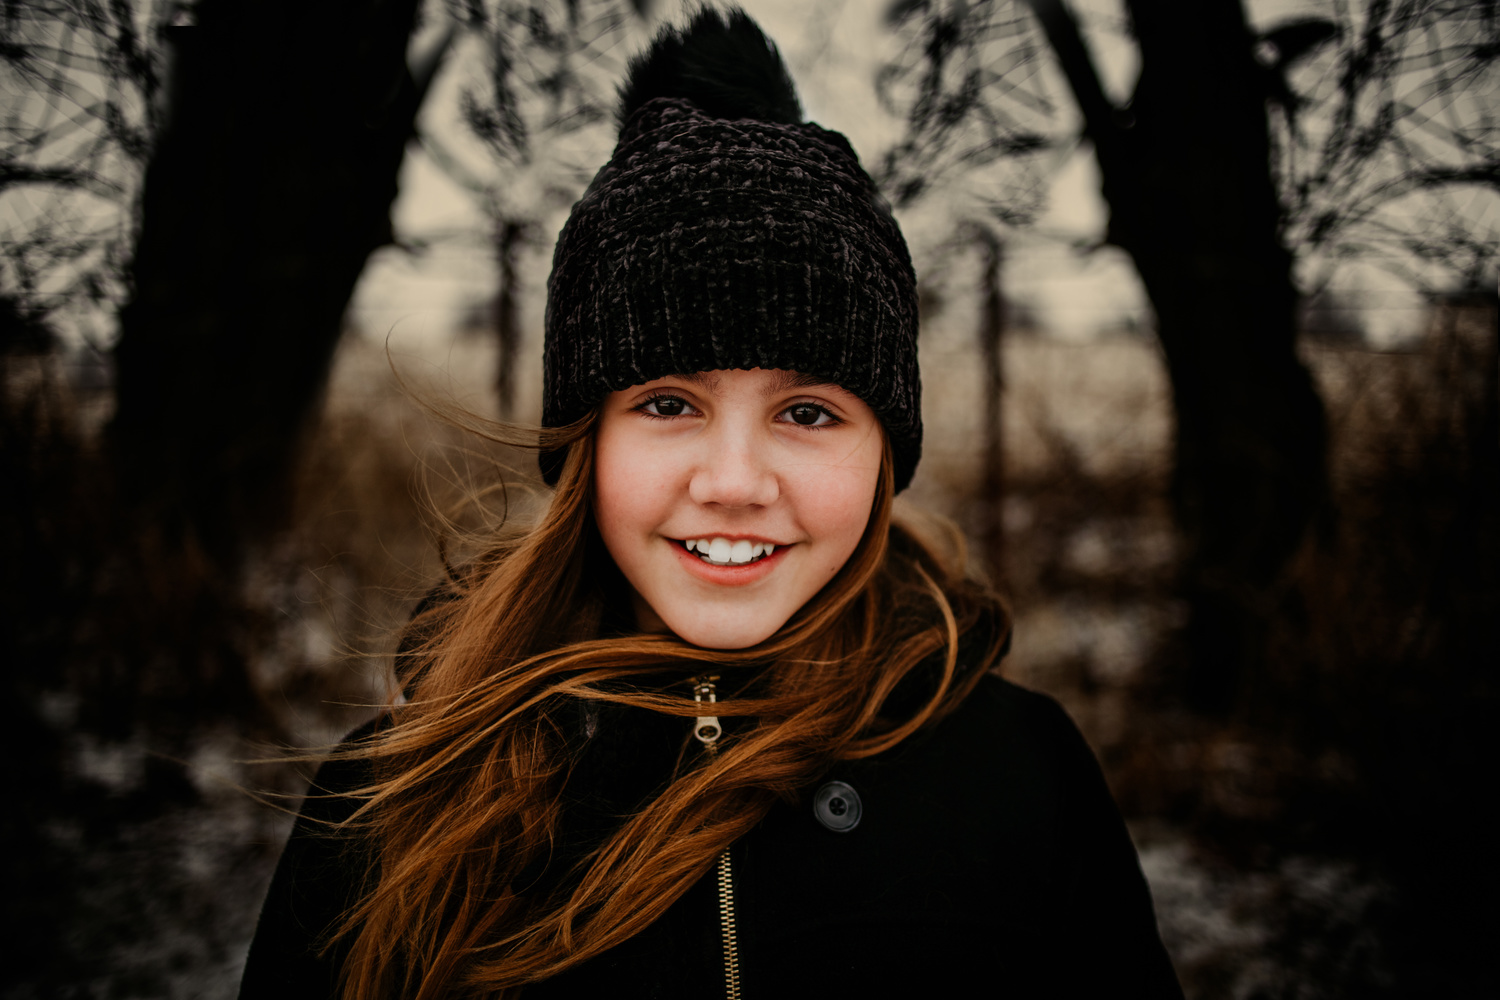 Windy Smile by Heather Wilson